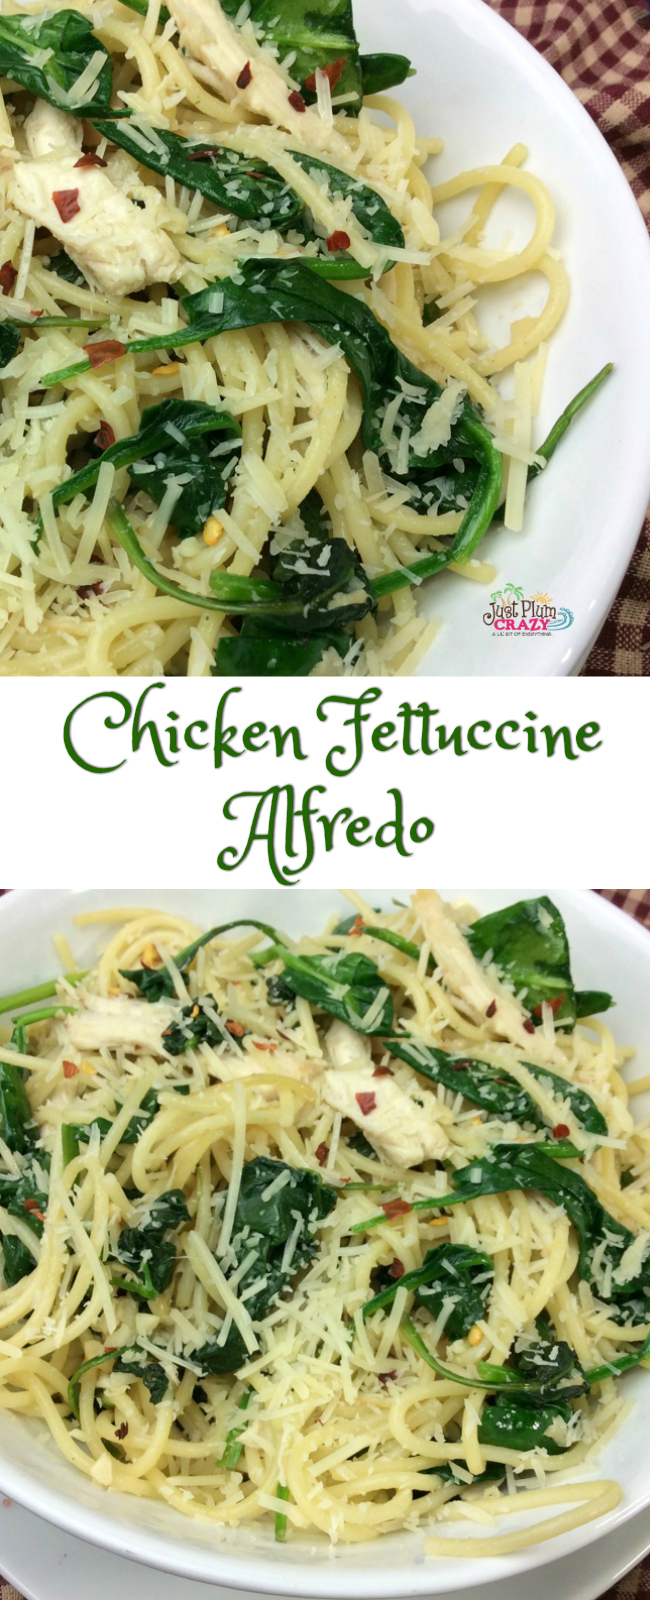 Rotisserie chicken is the ultimate go-to for busy families. Not only is it good served with a few simple sides, but it can be used in so many different recipes. On National Fettuccine Alfredo Day, why not whip up a batch of Rotisserie Chicken Fettuccine Alfredo?